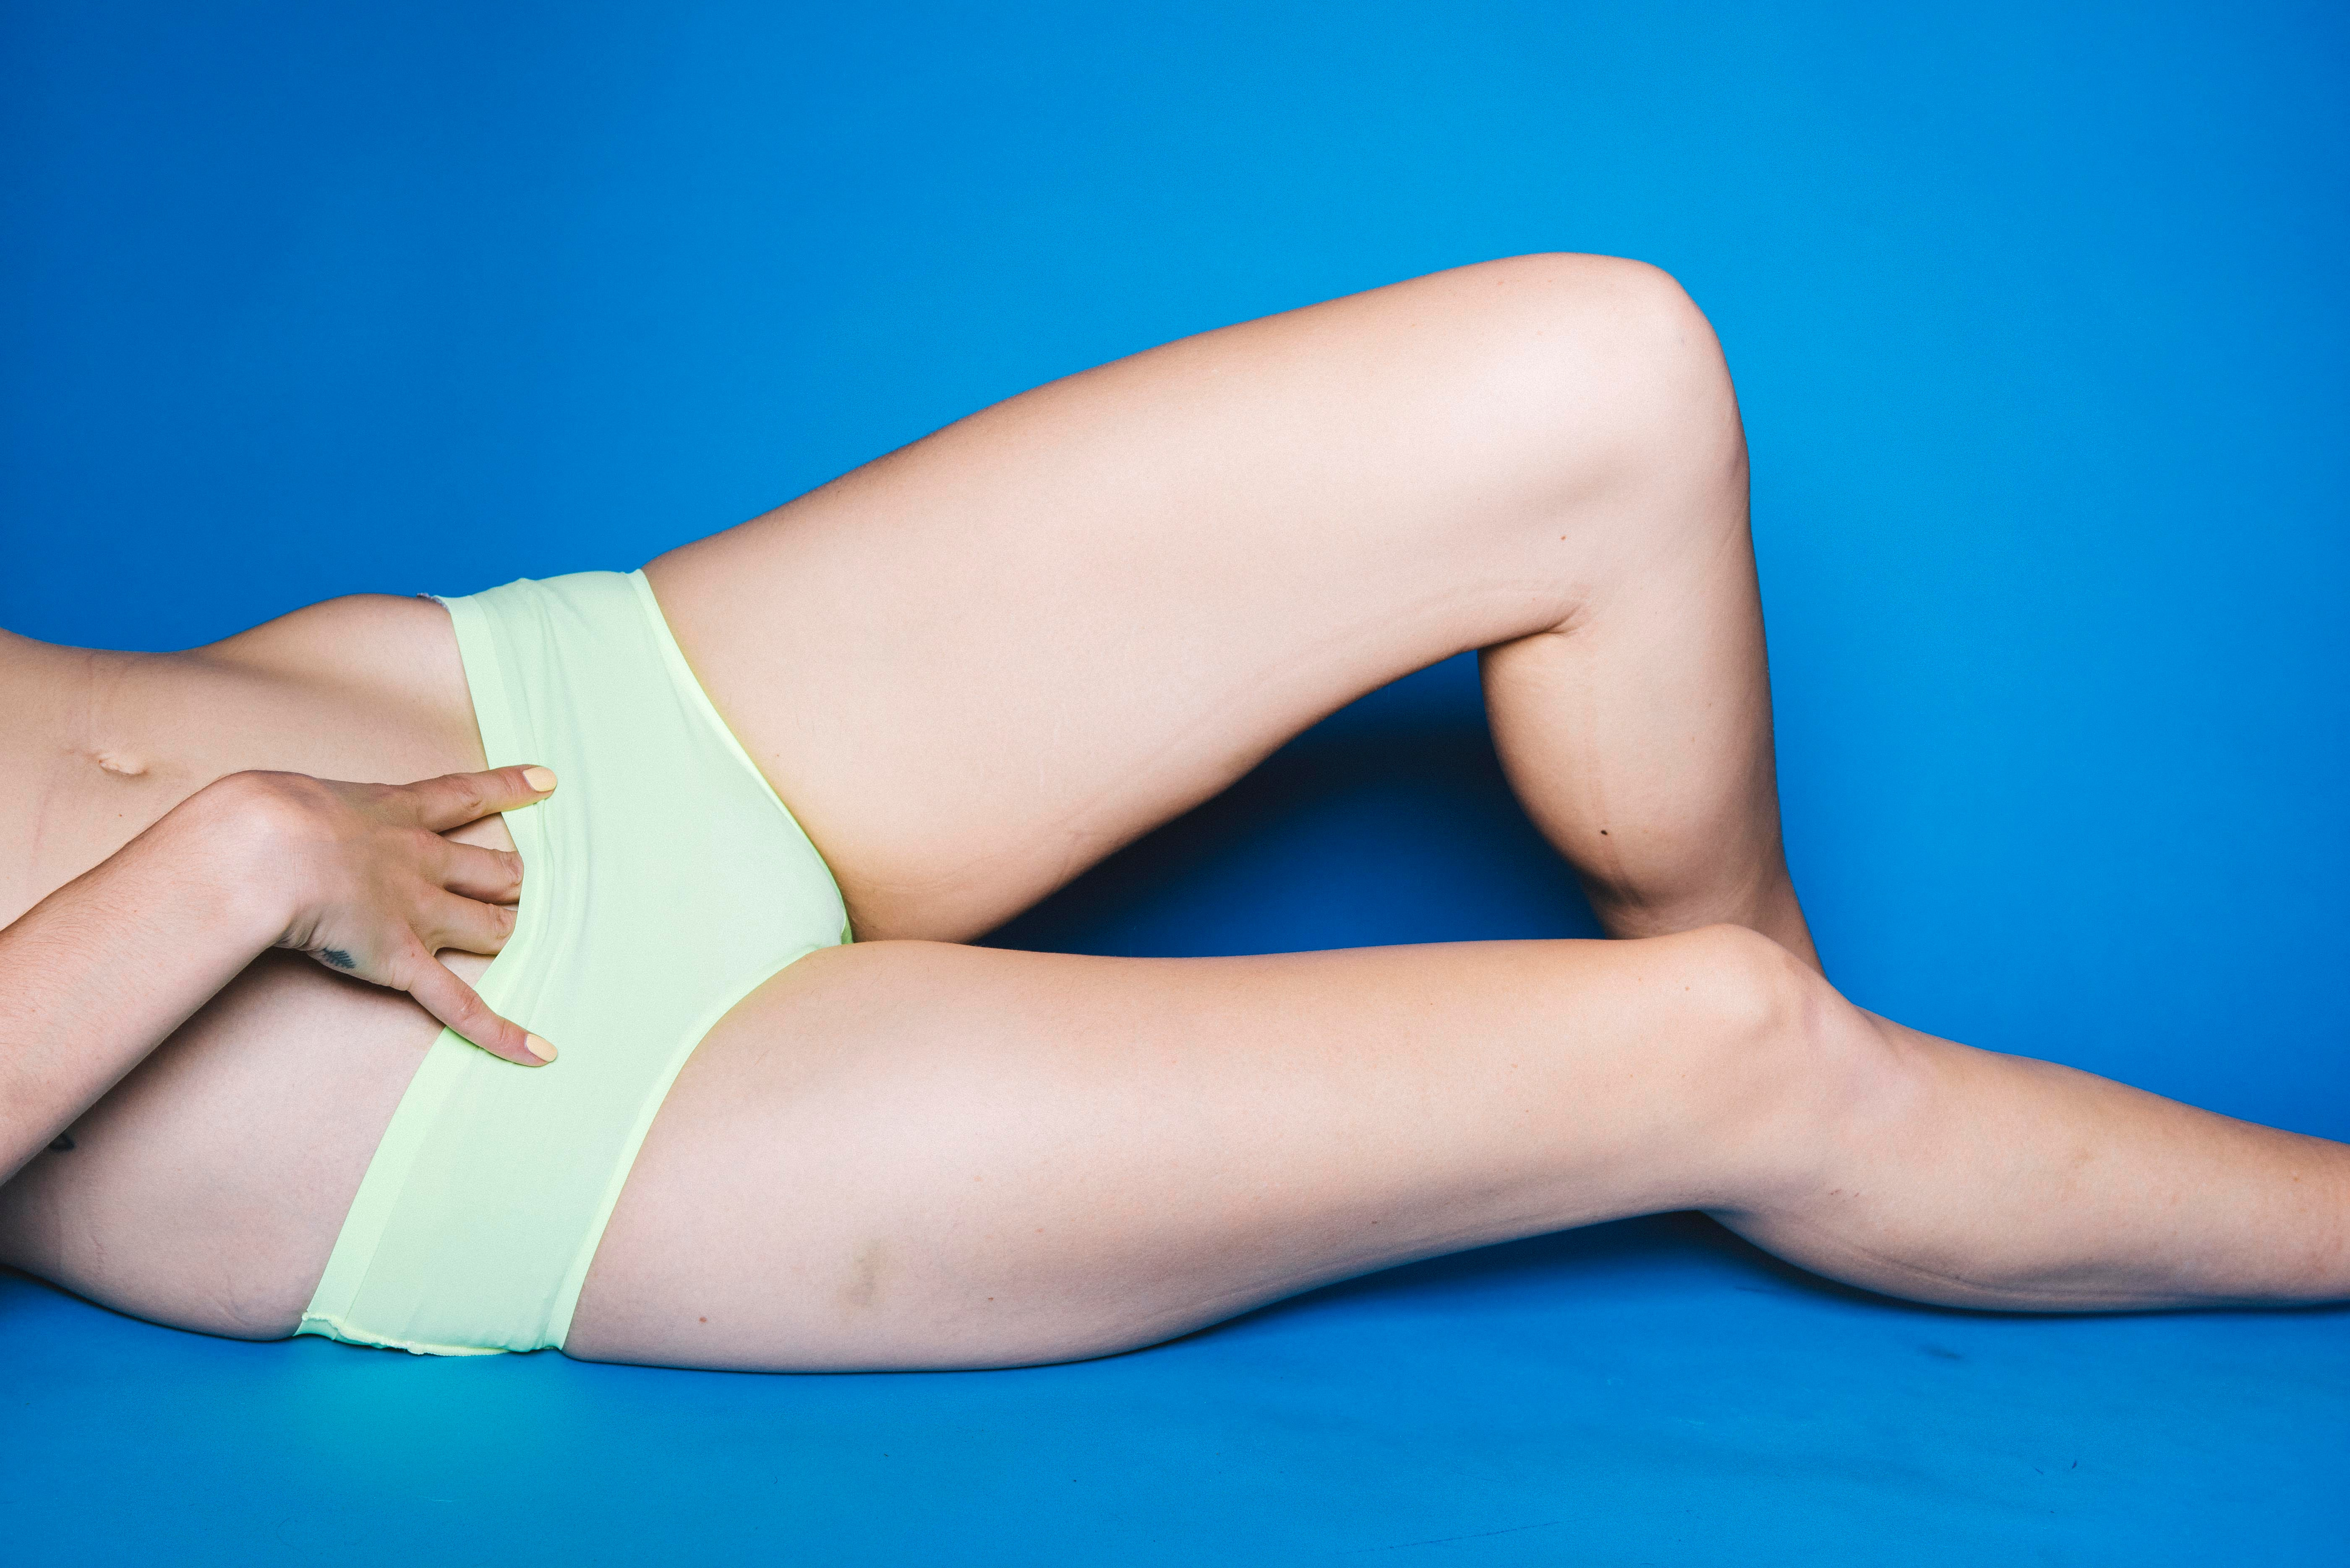 How To Treat Chafing In Groin Area | Healthy HesongBai